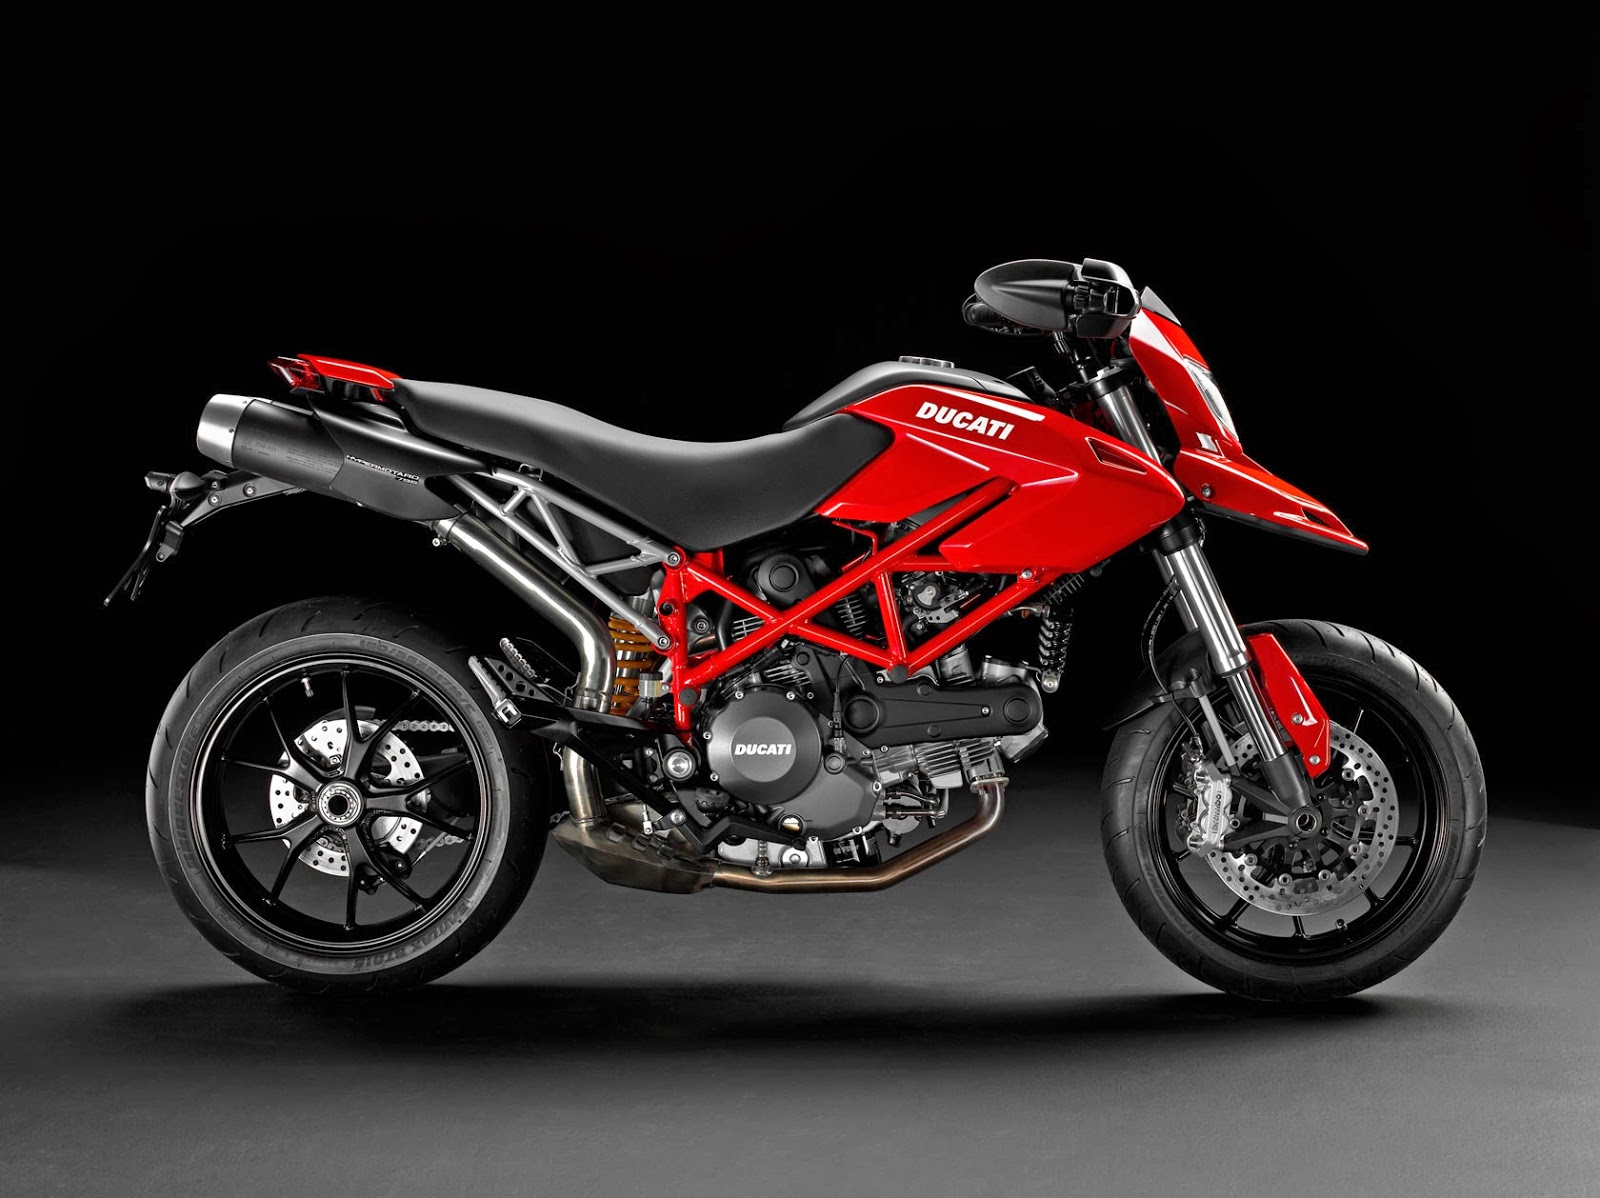 ducati hypermotard 821 leaked pictures 2014 just welcome to automotive. Black Bedroom Furniture Sets. Home Design Ideas